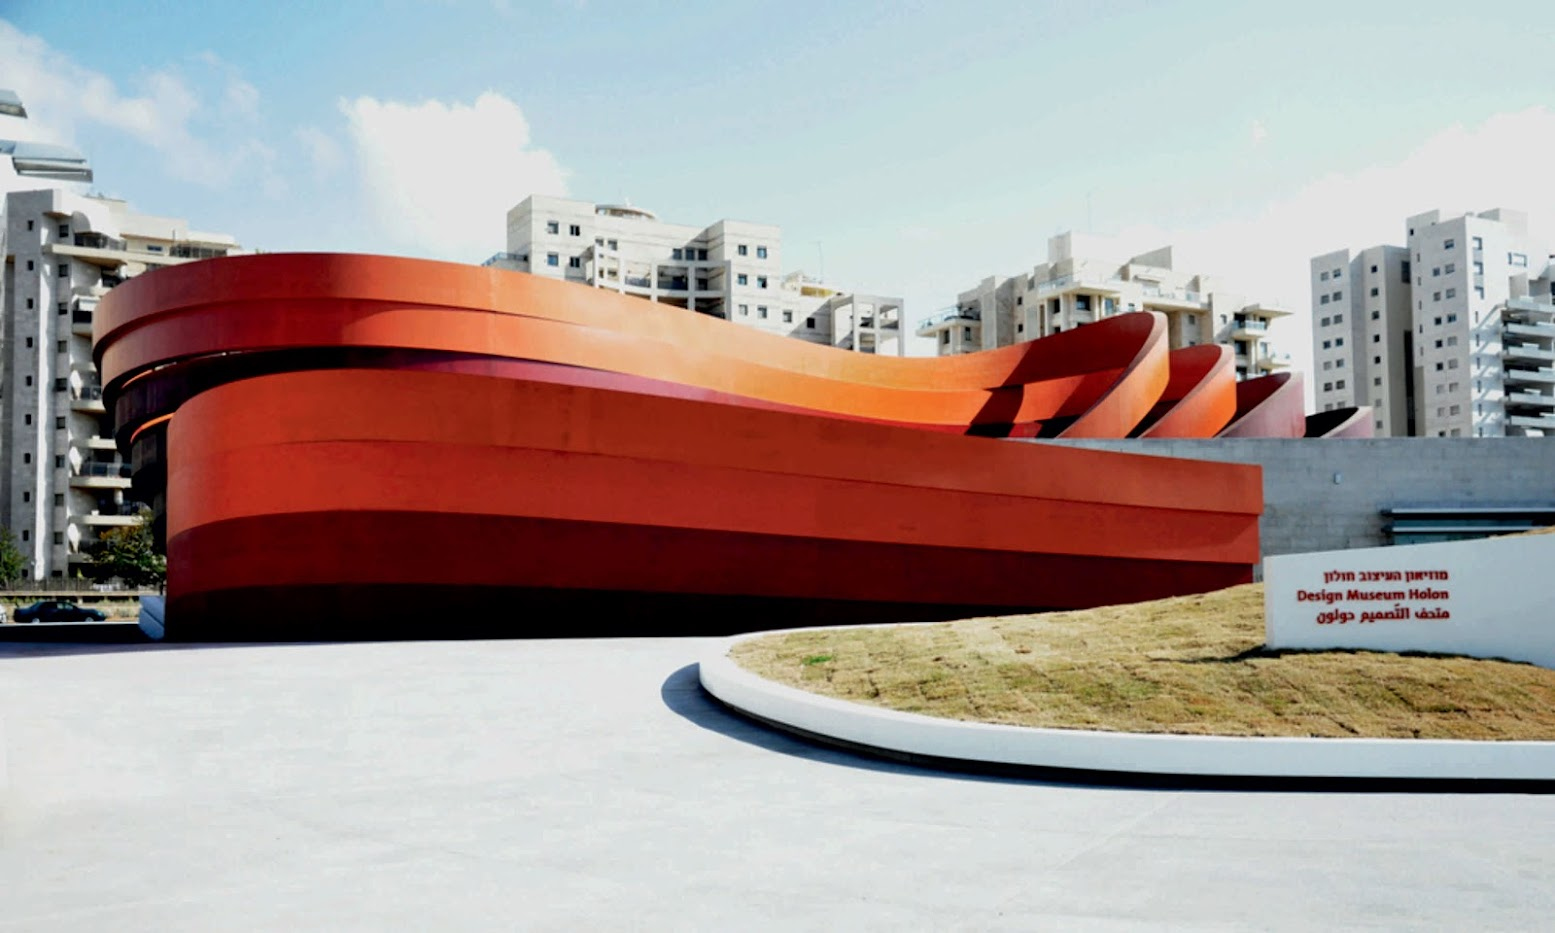 Winnipeg, Manitoba, Canada: [DESIGN MUSEUM HOLON BY RON ARAD ARCHITECTS]